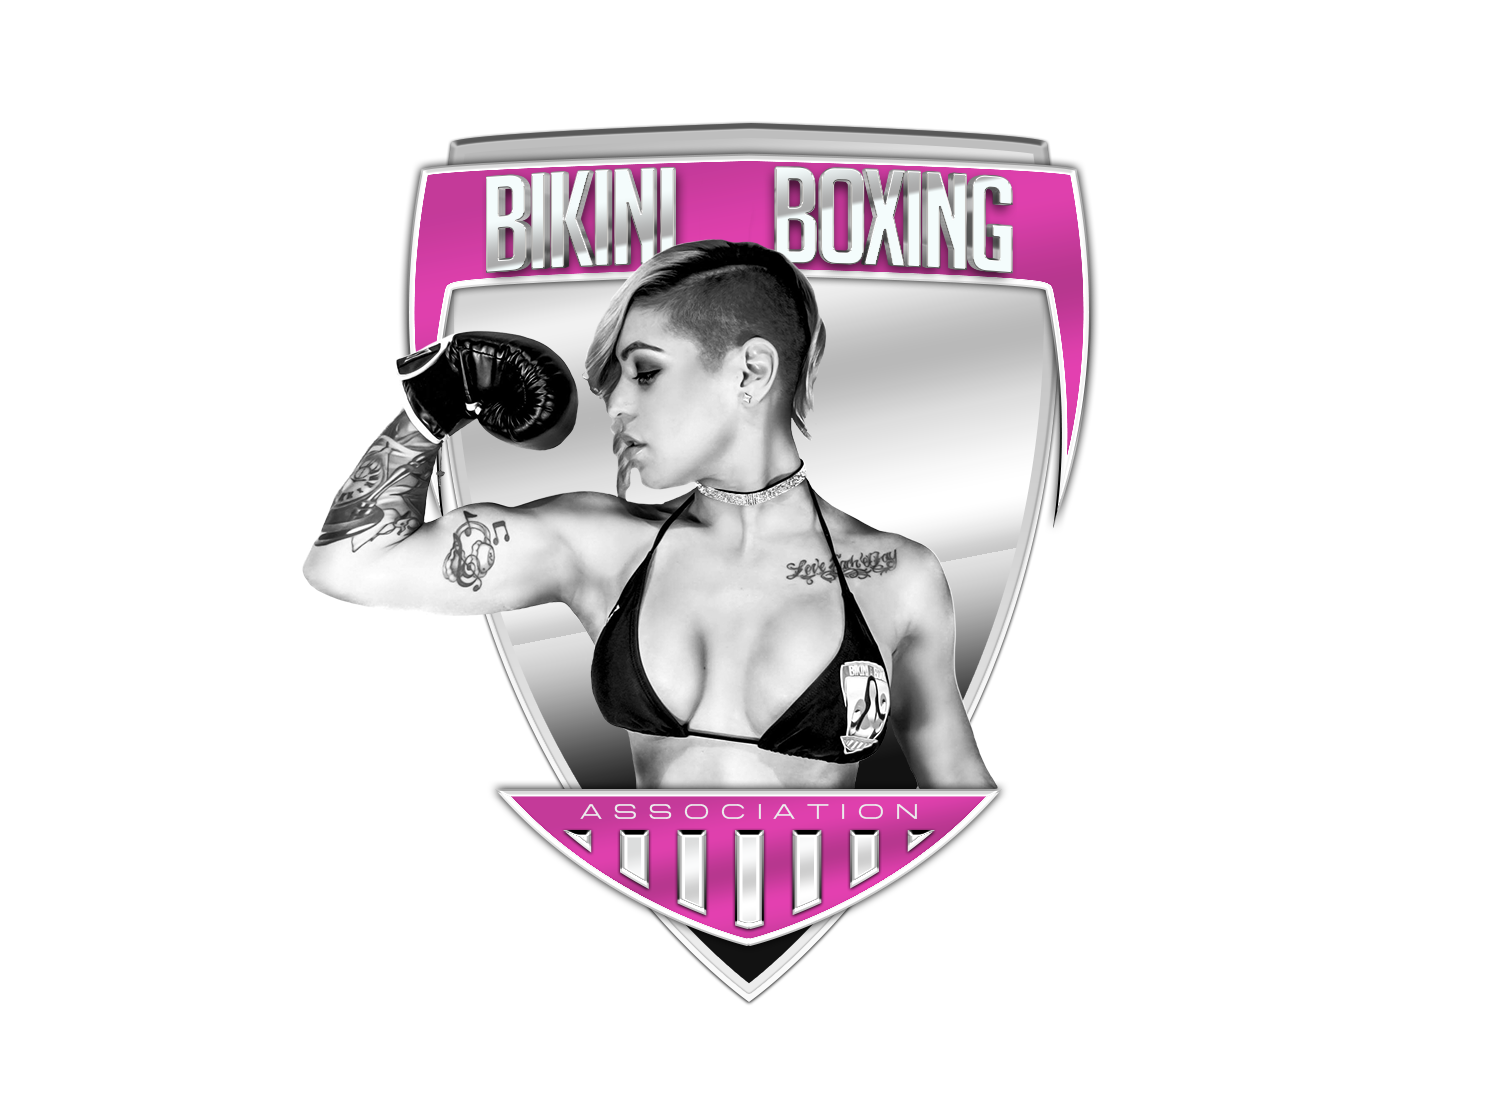 Bikini Boxing Association™